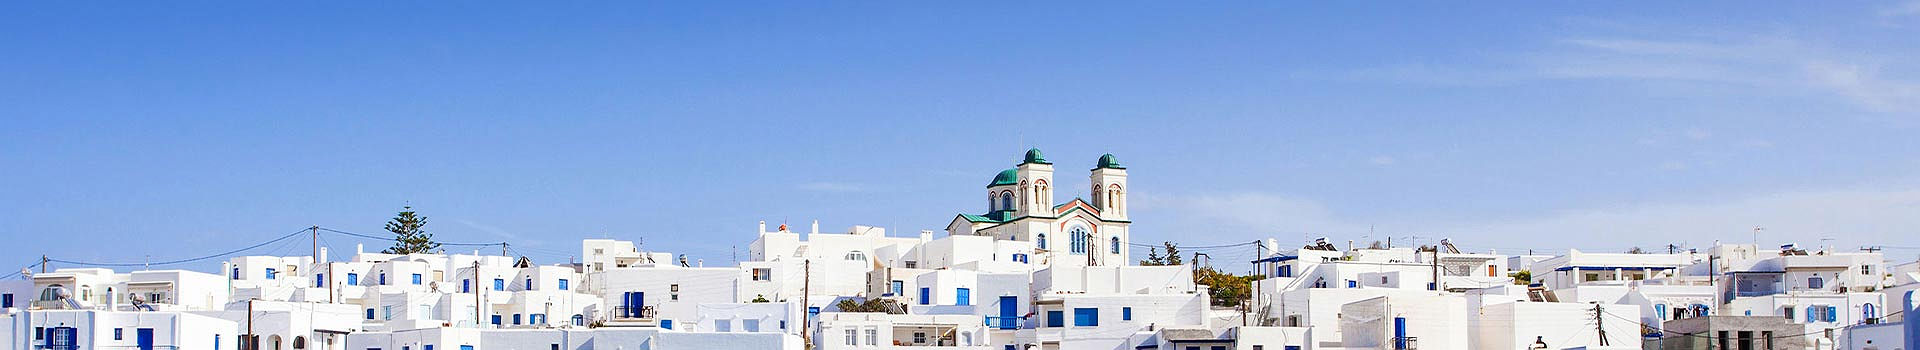 pano-muses-cyclades-4881